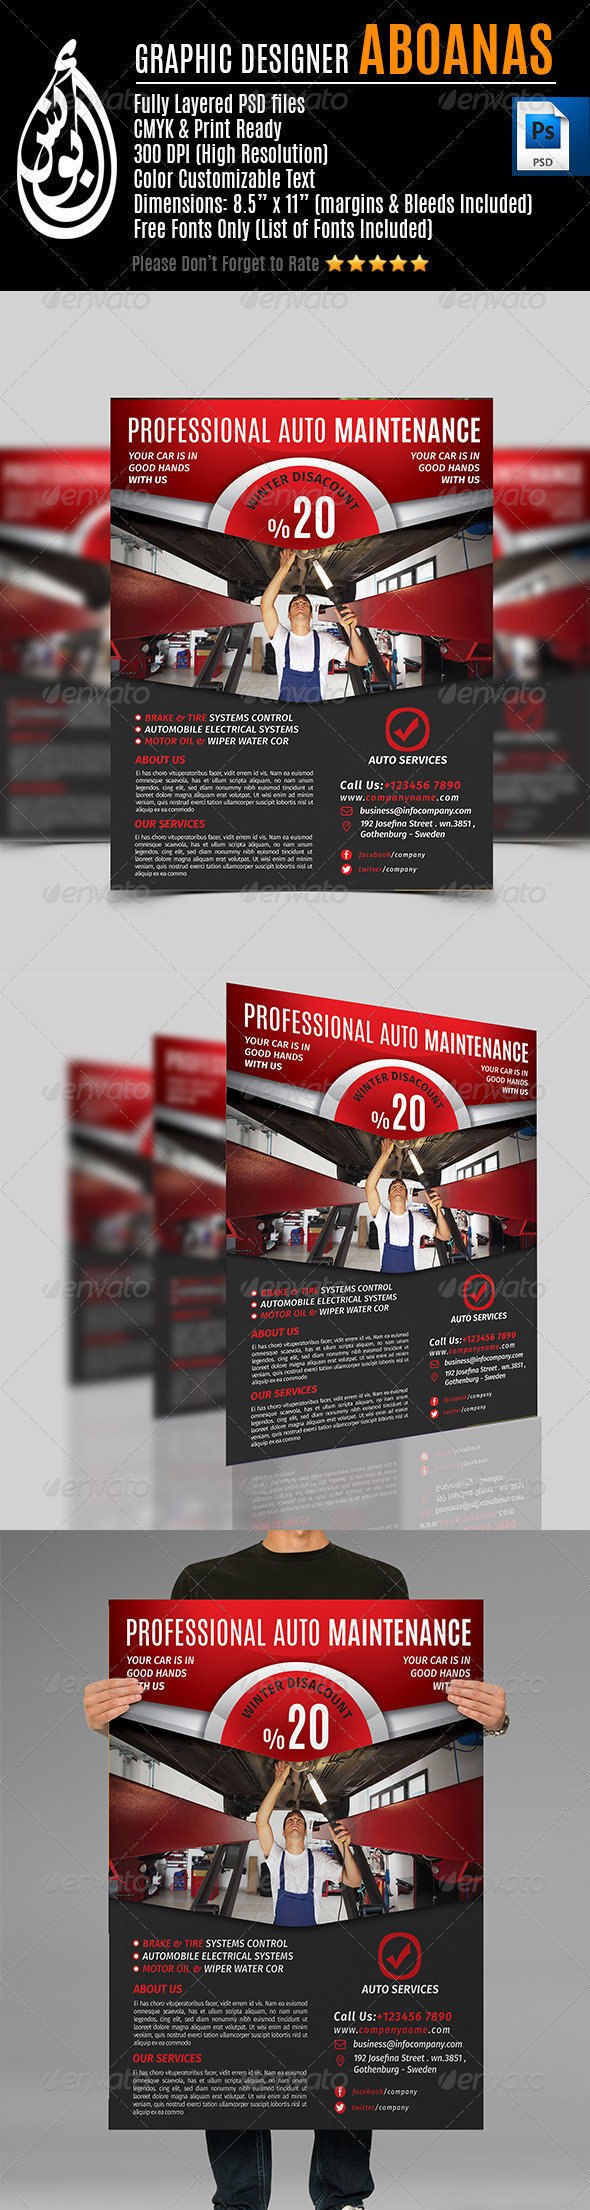 Auto Services Flyer Templates Vol.2